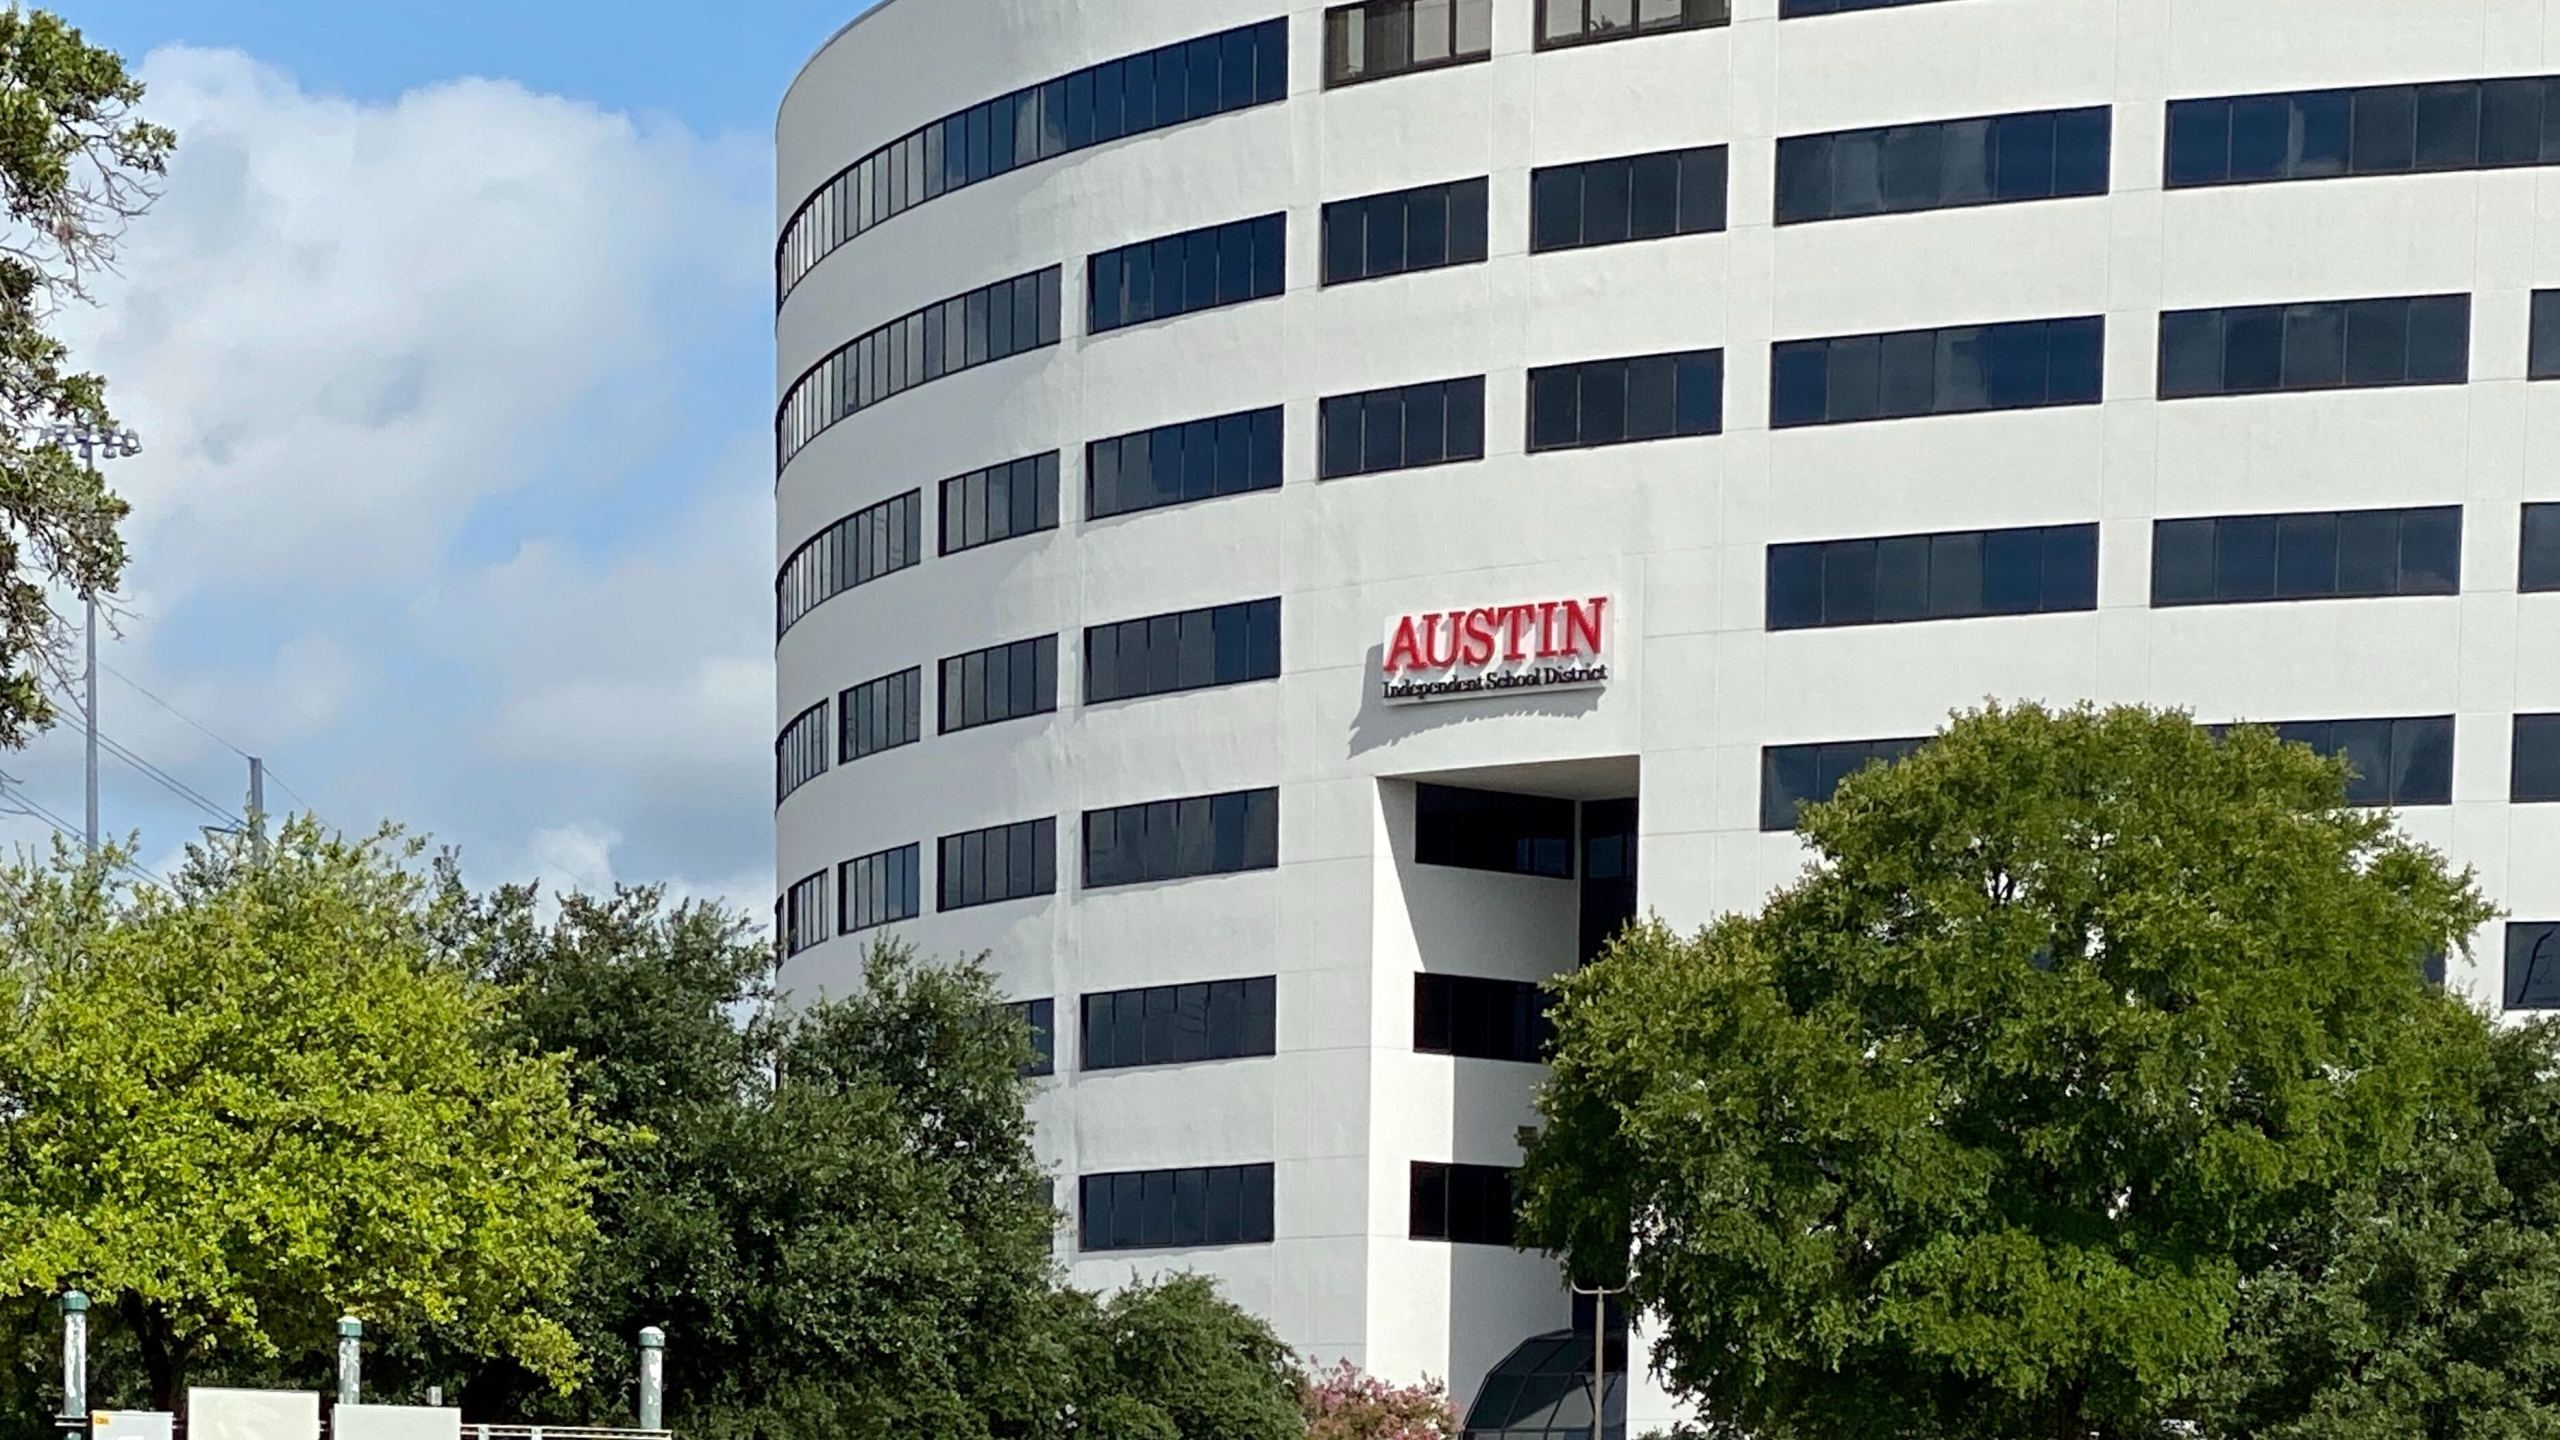 Austin ISD Headquarters (Picture: KXAN/Alex Hoder)